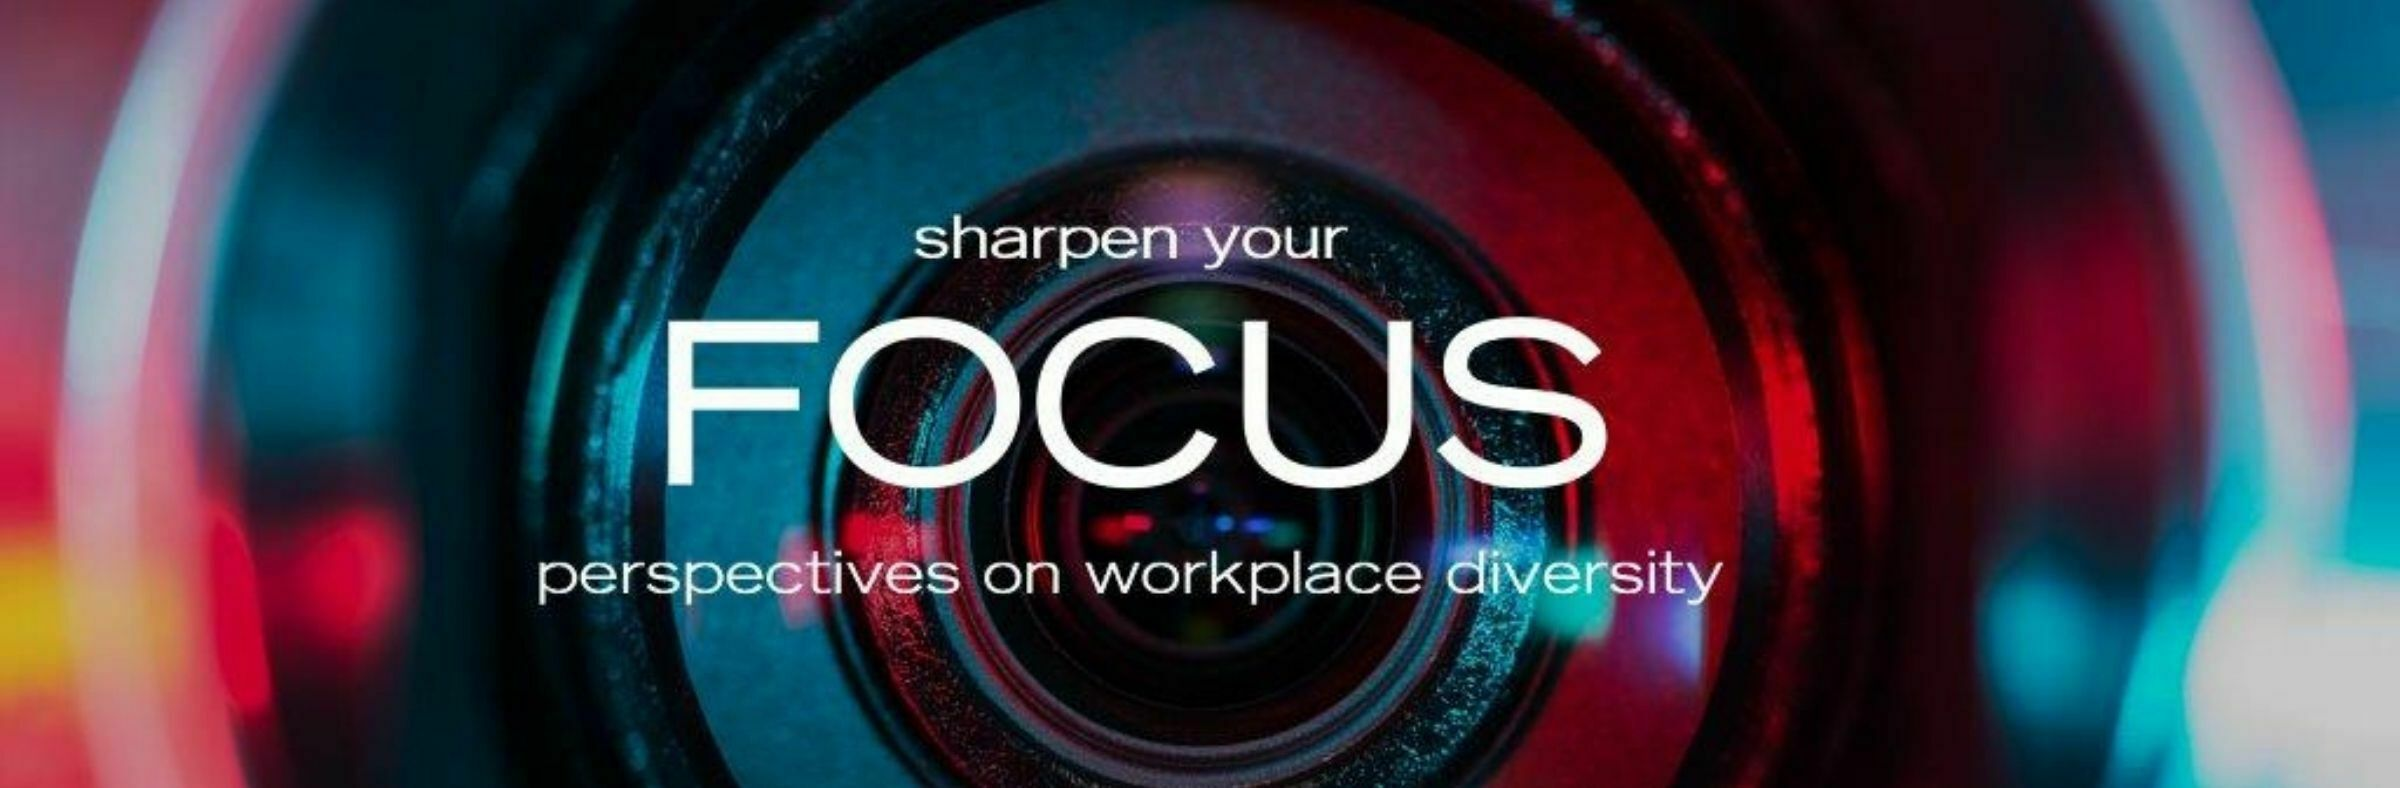 Sharpen Your FOCUS: Perspectives on Workplace Diversity